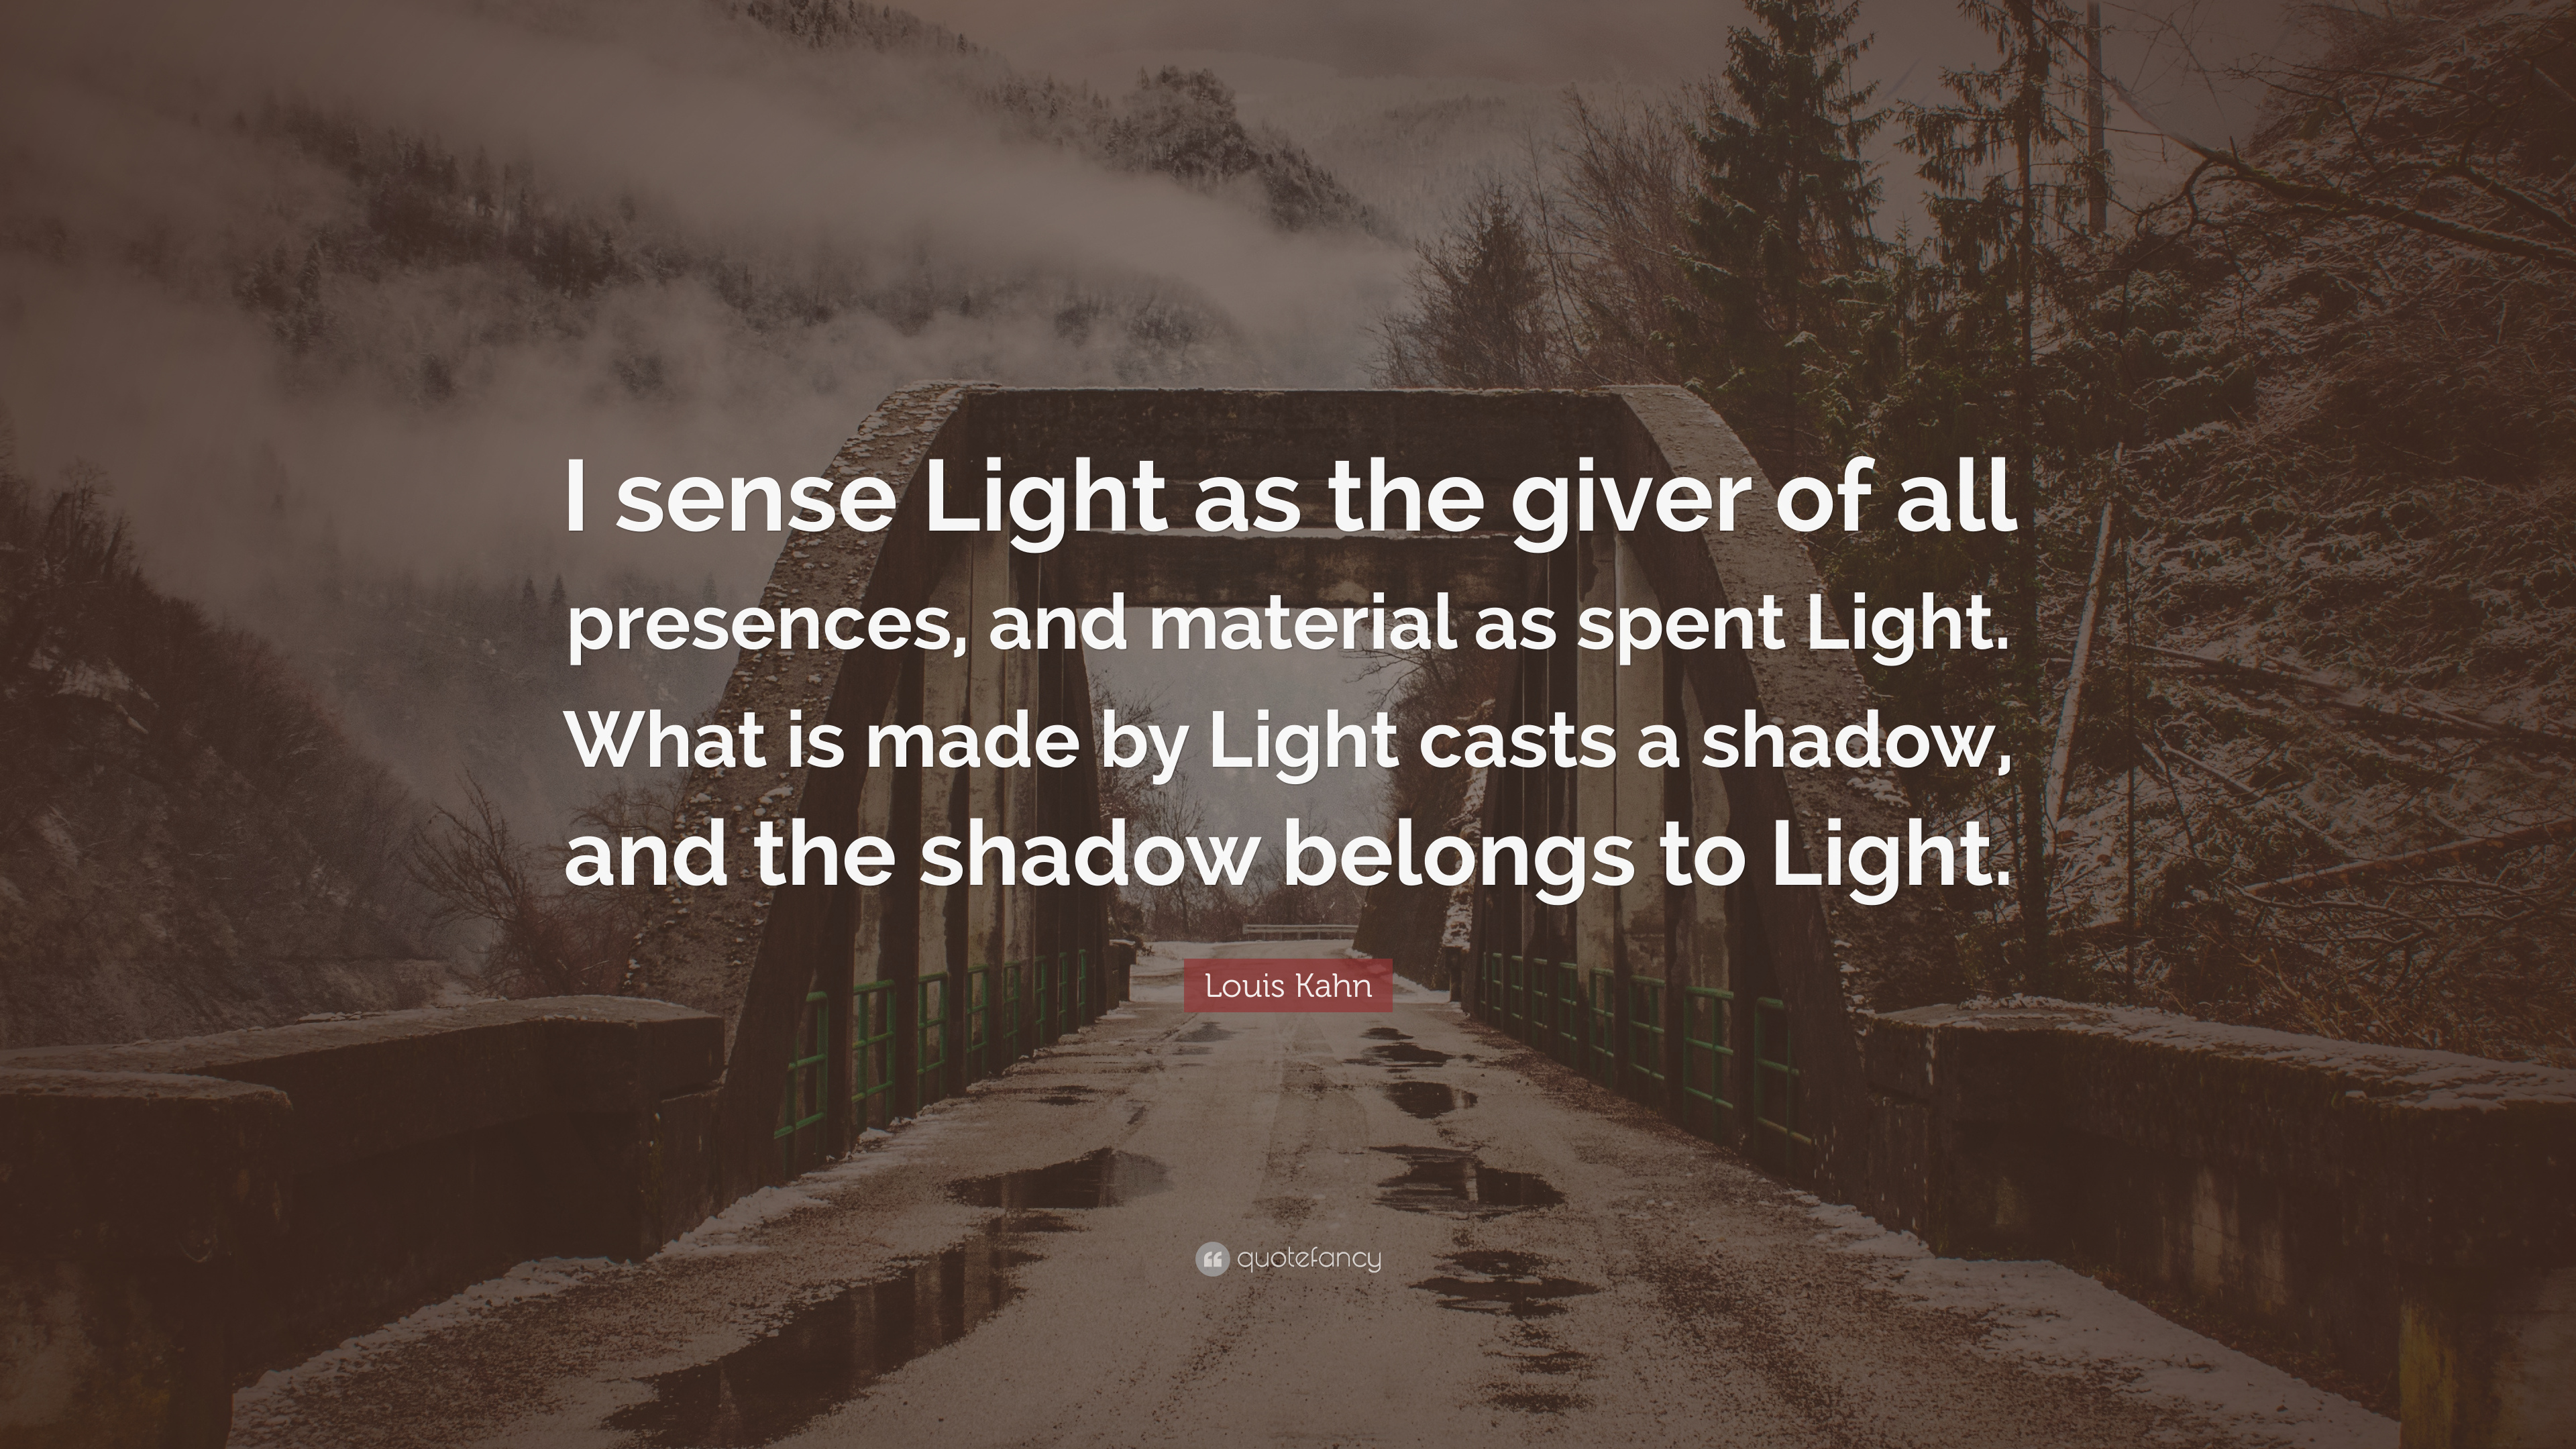 Louis Kahn Quote u201cI sense Light as the giver of all presences and material as spent Light ...